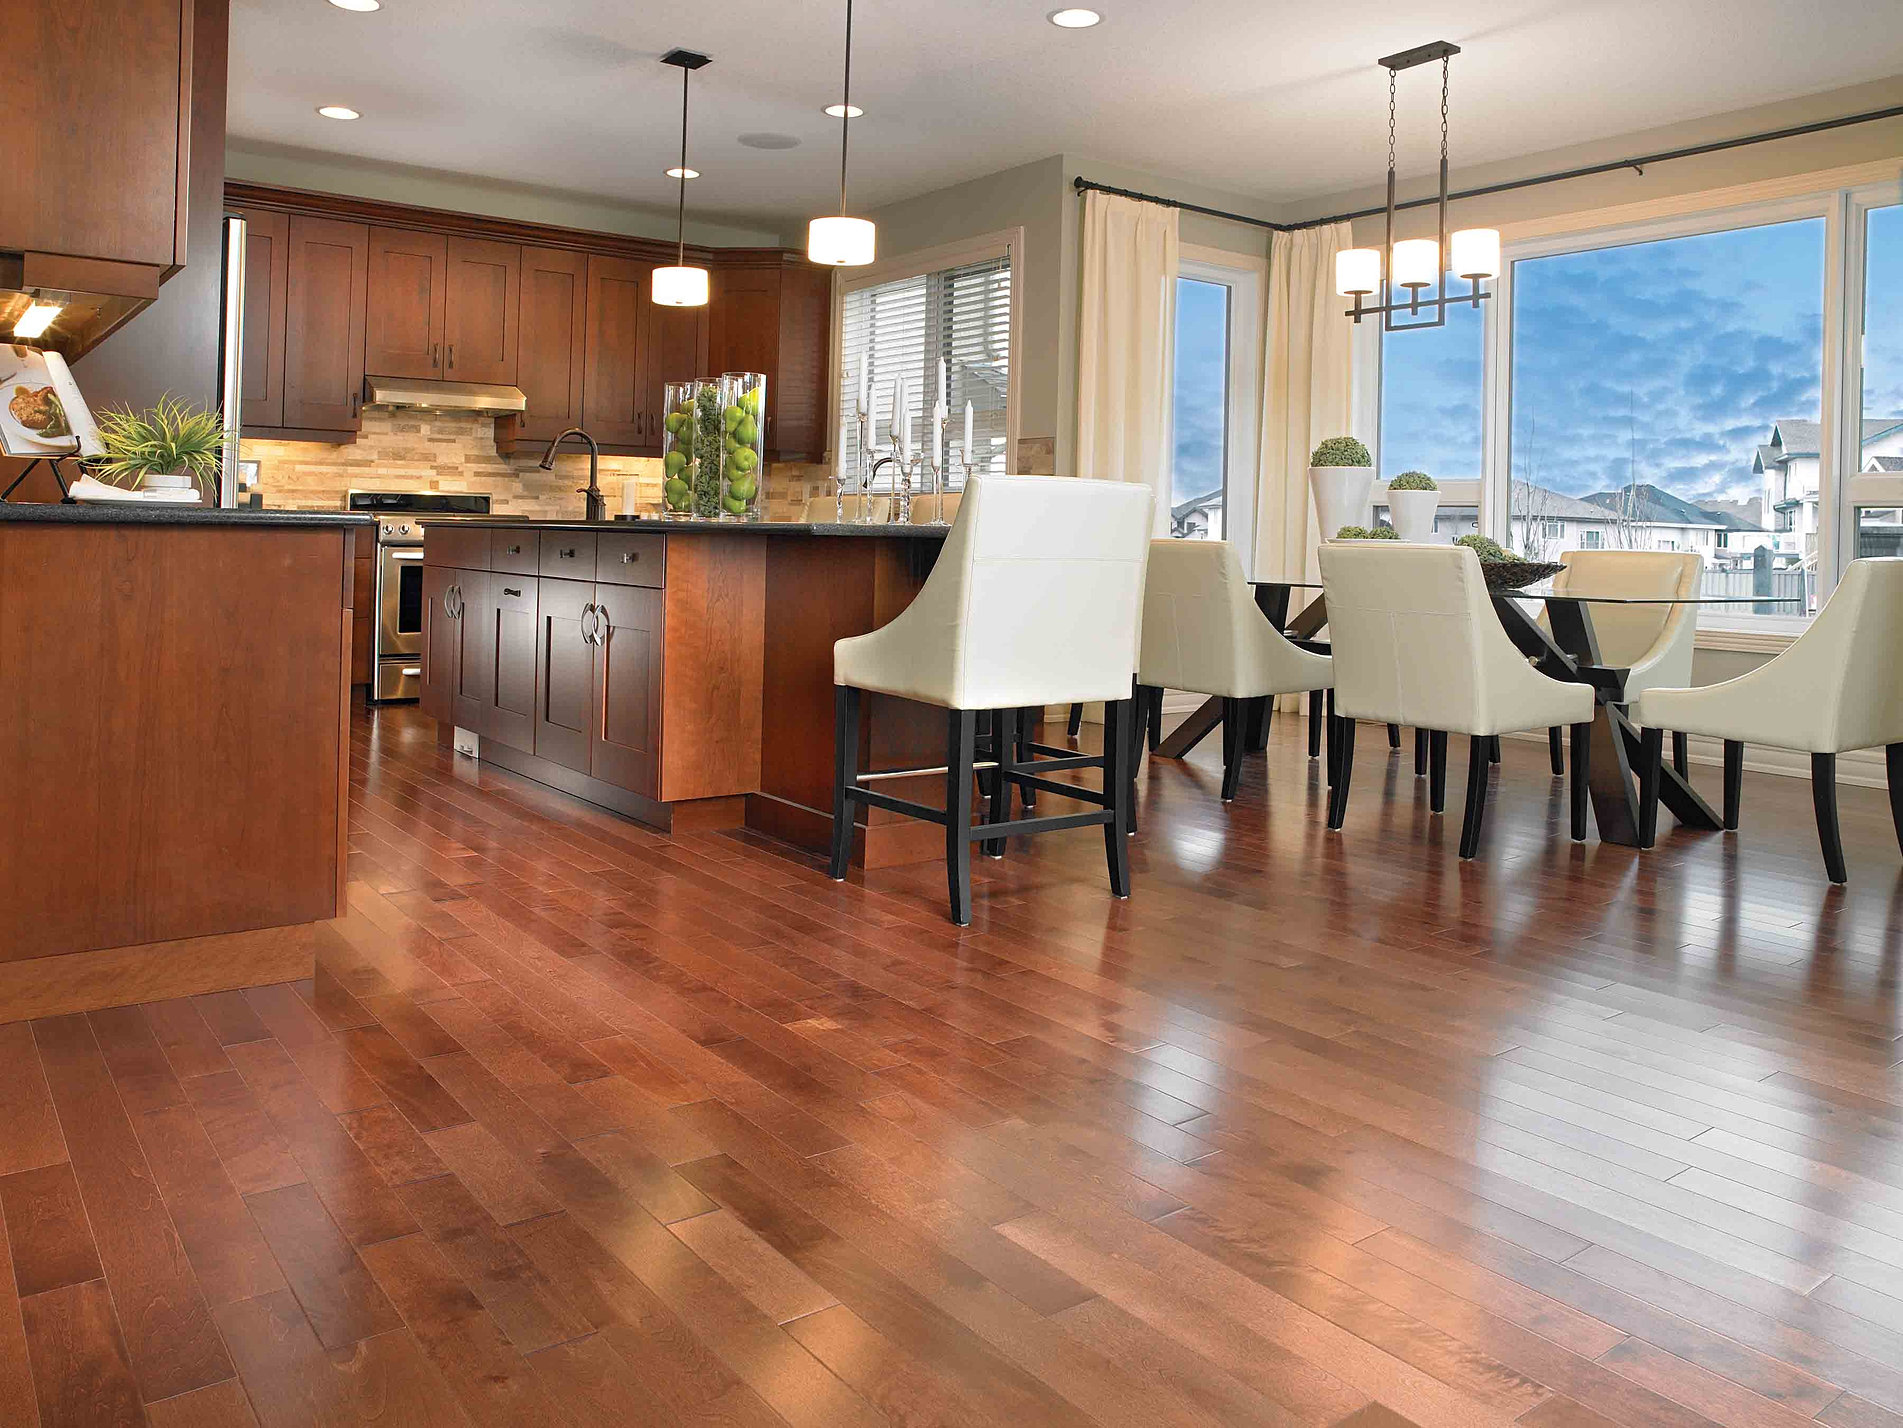 Laminate Floors For Kitchens Calvetta Brothers Floor Show 216 220 6473